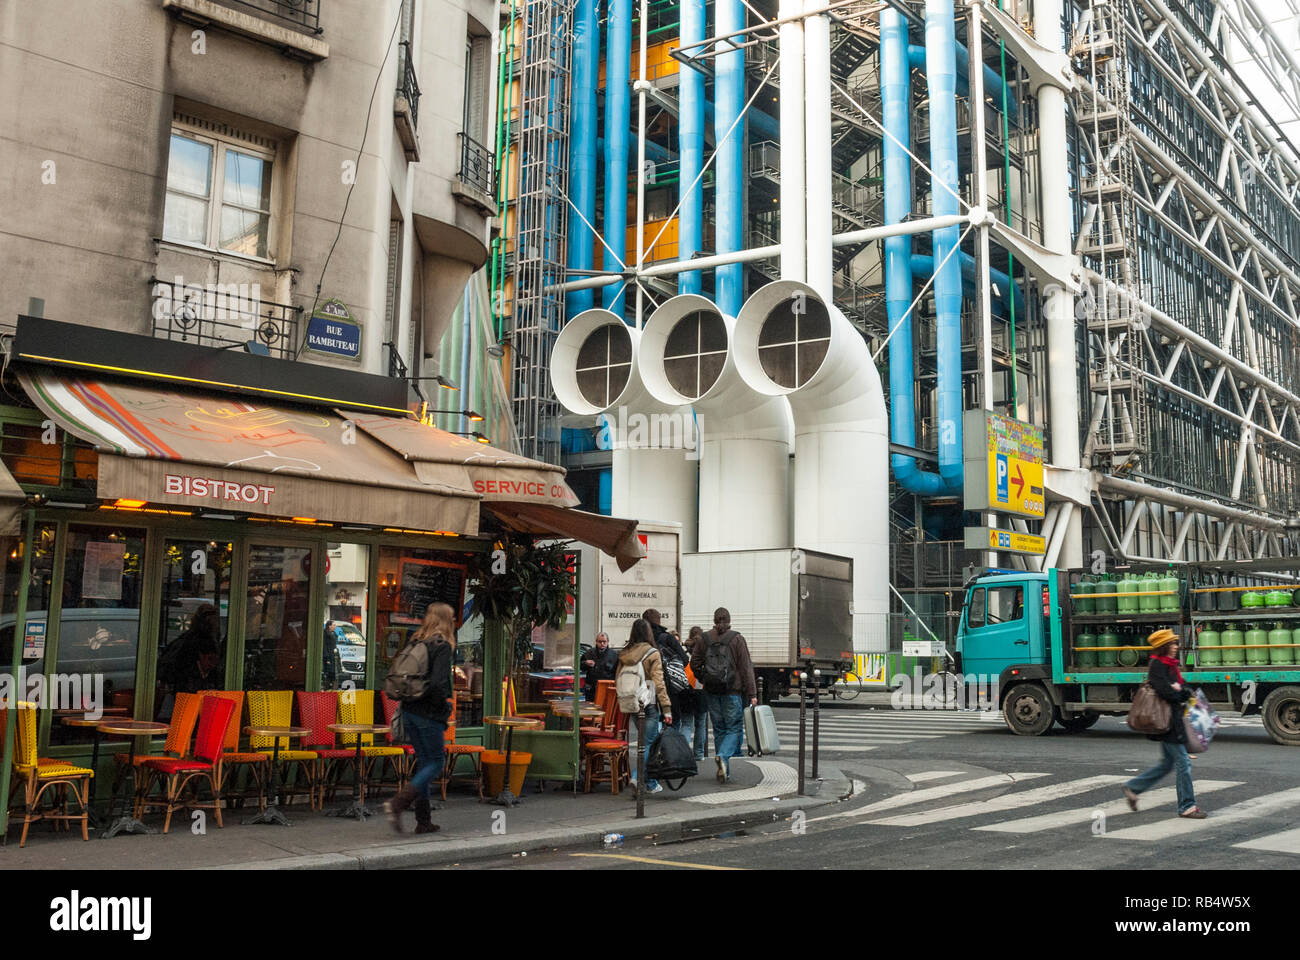 Paris street scene, winter, contrasting the old style Parisian architecture of a small cafe next to the radical architecture of the Pompidou Centre. Stock Photo